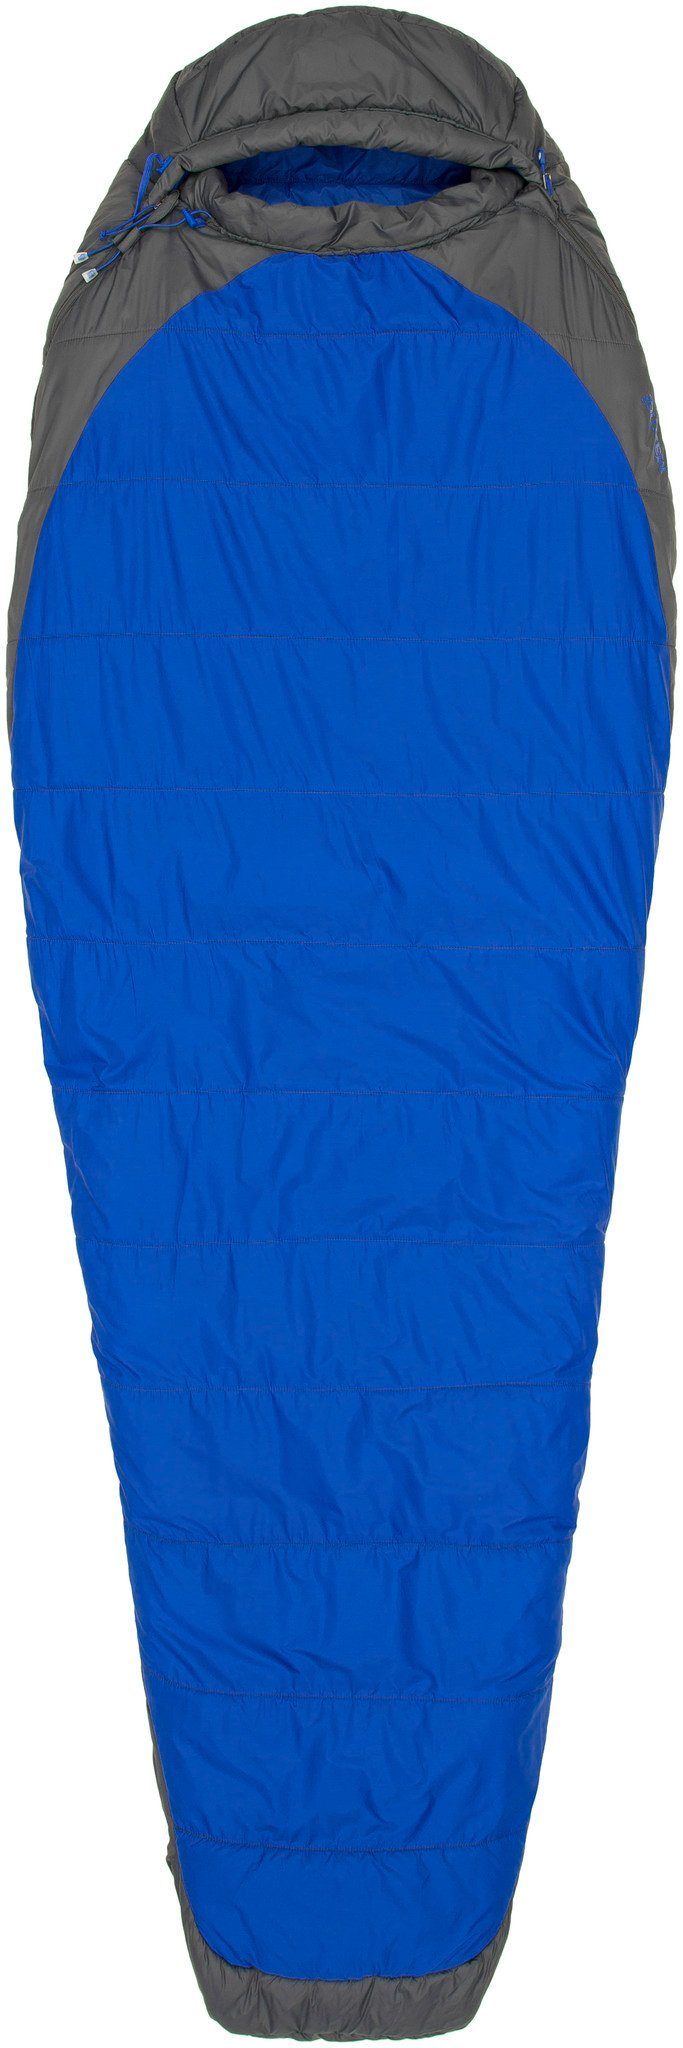 Marmot Schlafsack »Trestles Elite 15 Sleeping Bag Long«